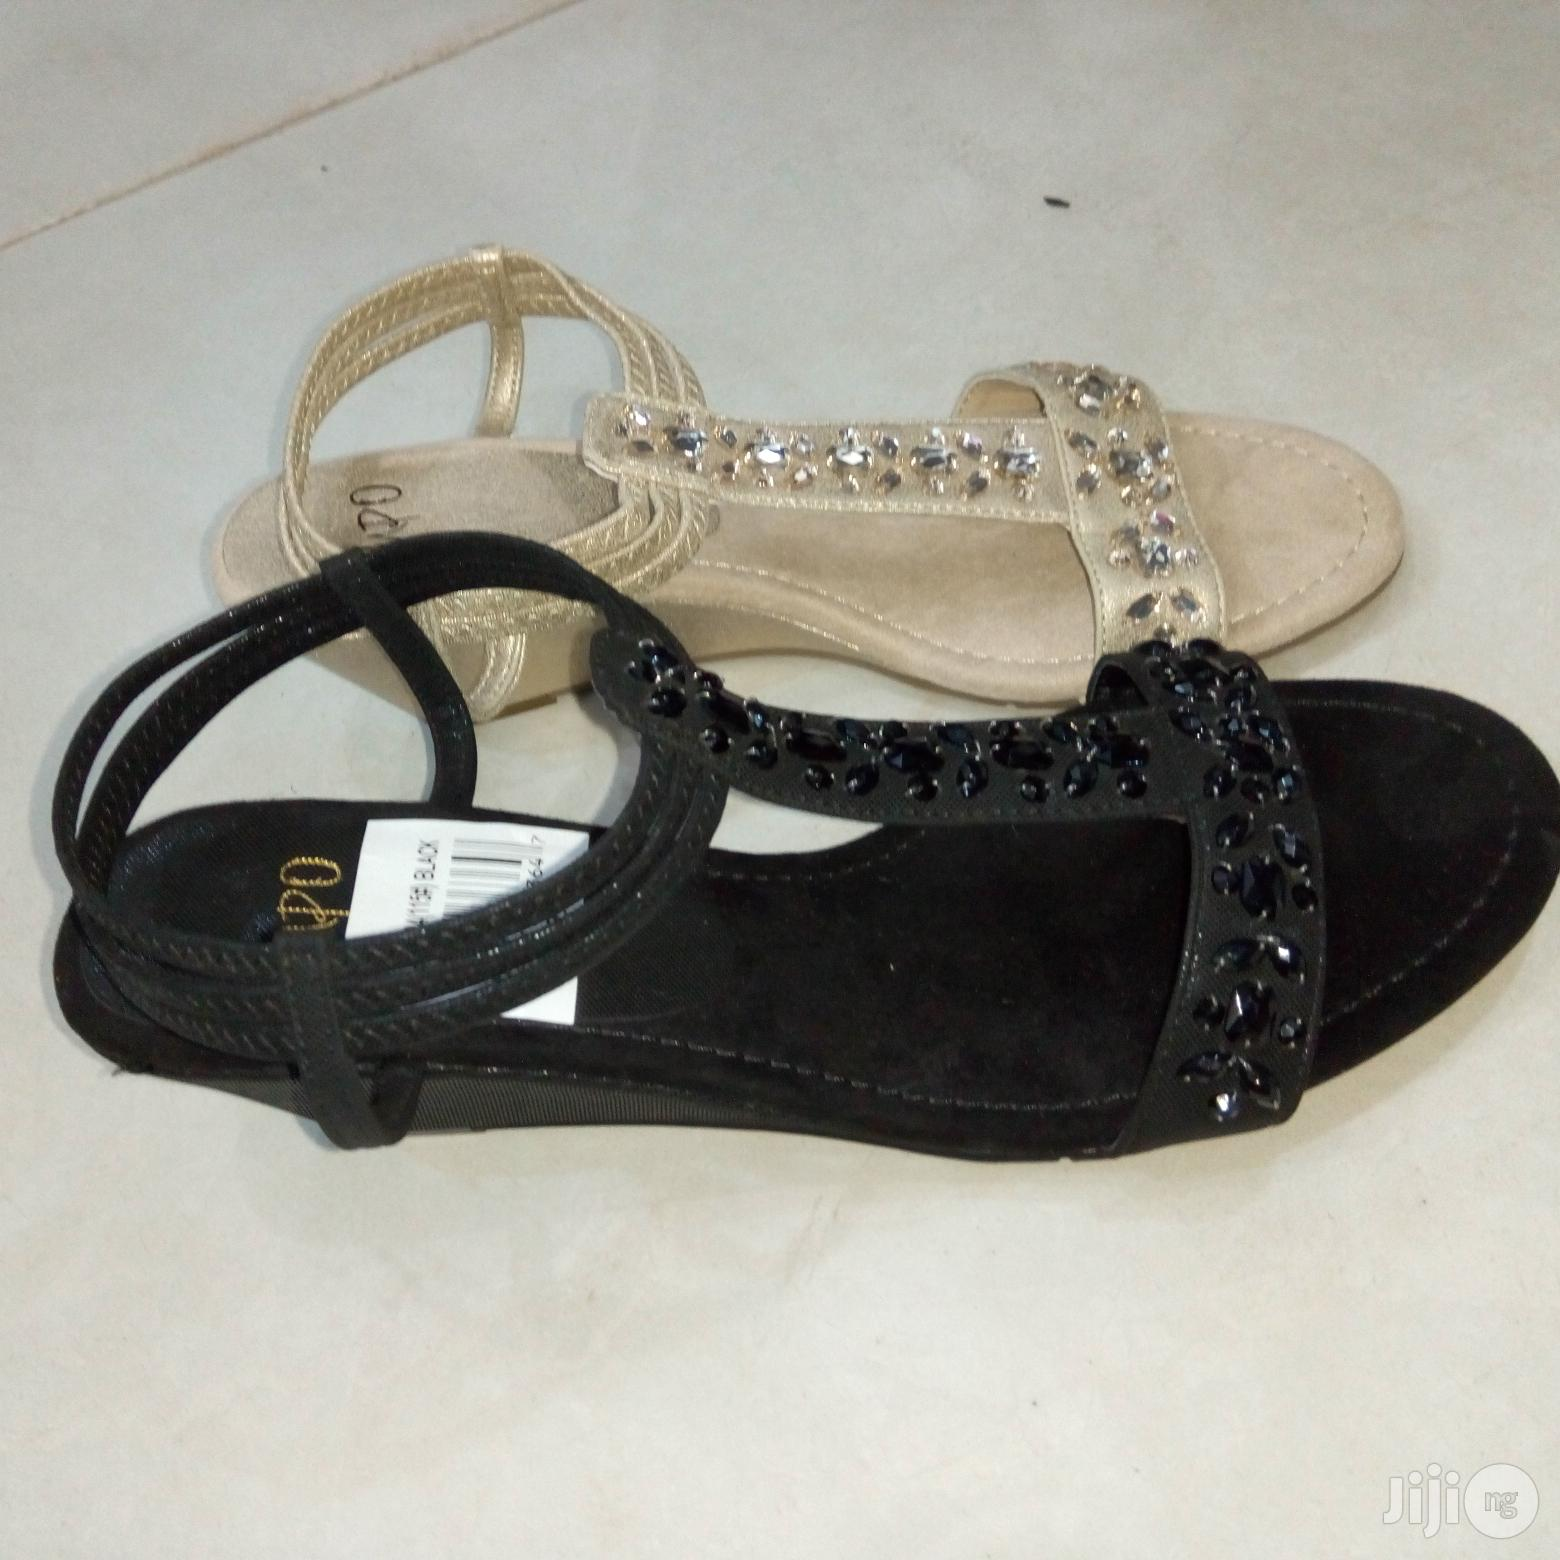 IMPO Sandals (New Arrival) | Shoes for sale in Yaba, Lagos State, Nigeria